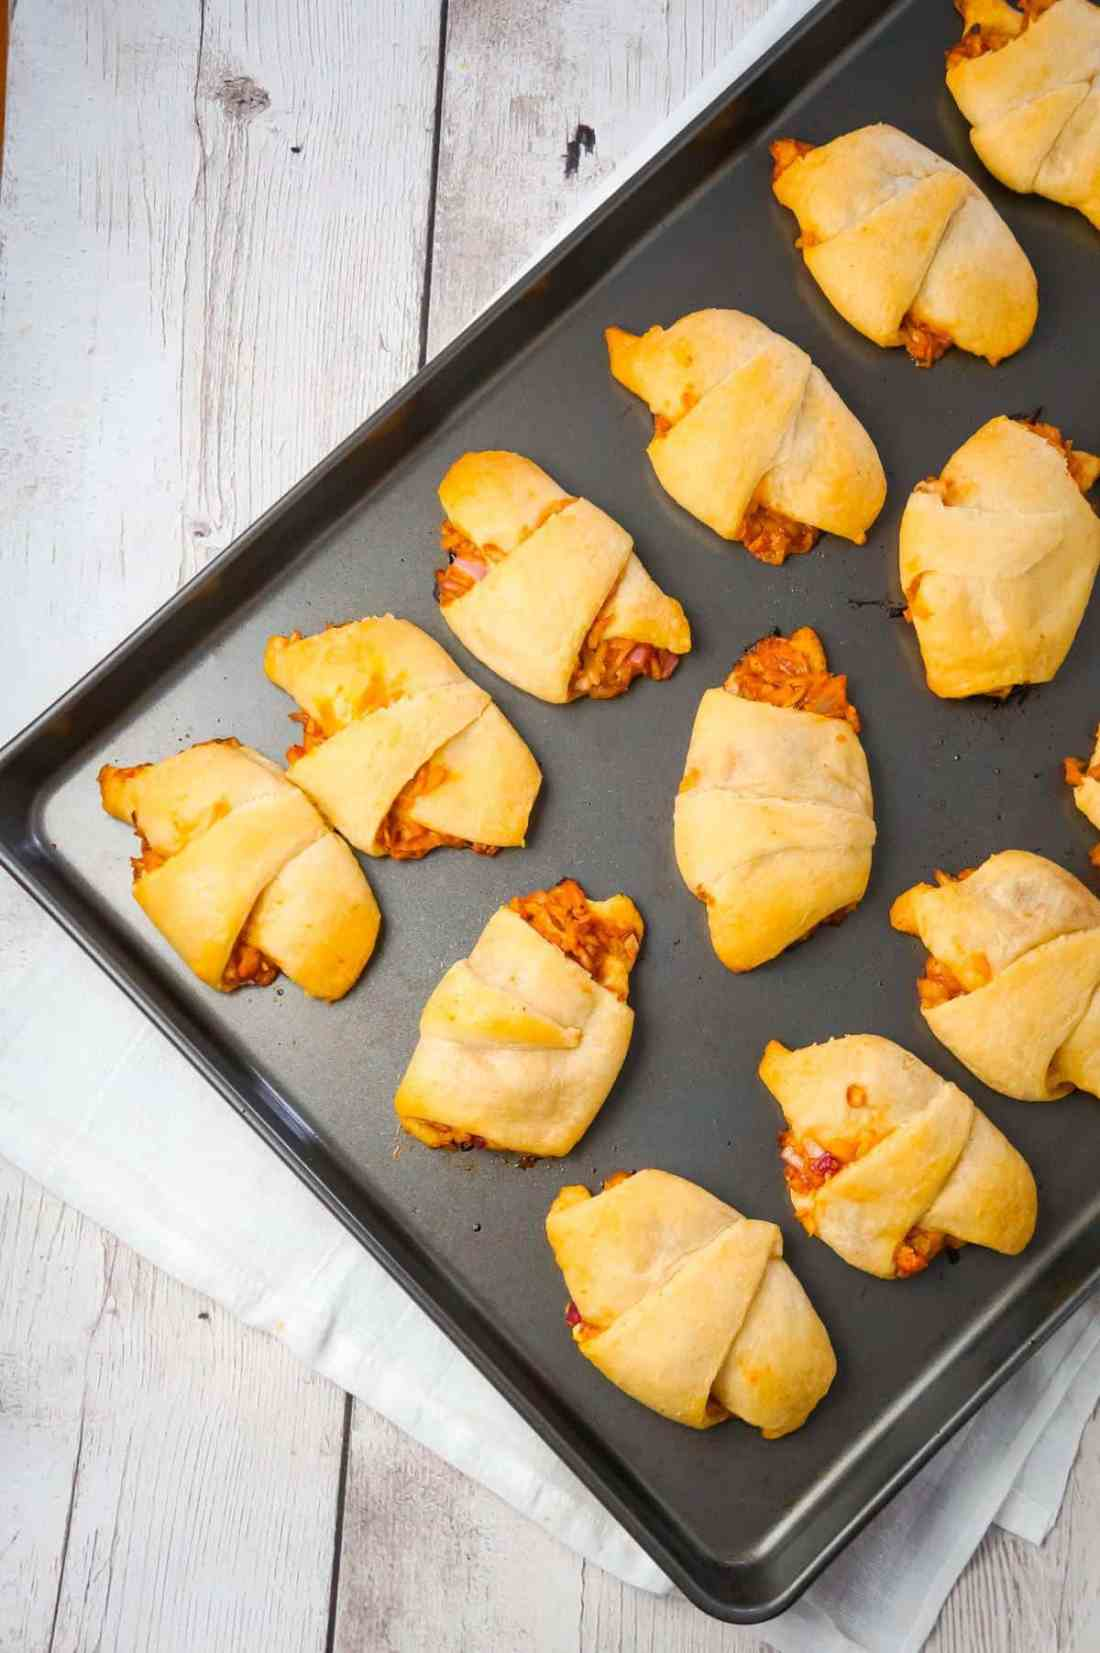 BBQ Chicken Crescent Rolls are an easy weeknight dinner recipe using shredded rotisserie chicken, diced red onions, Sweet Baby Ray's Barbecue sauce, shredded cheese and Pillsbury crescent rolls.